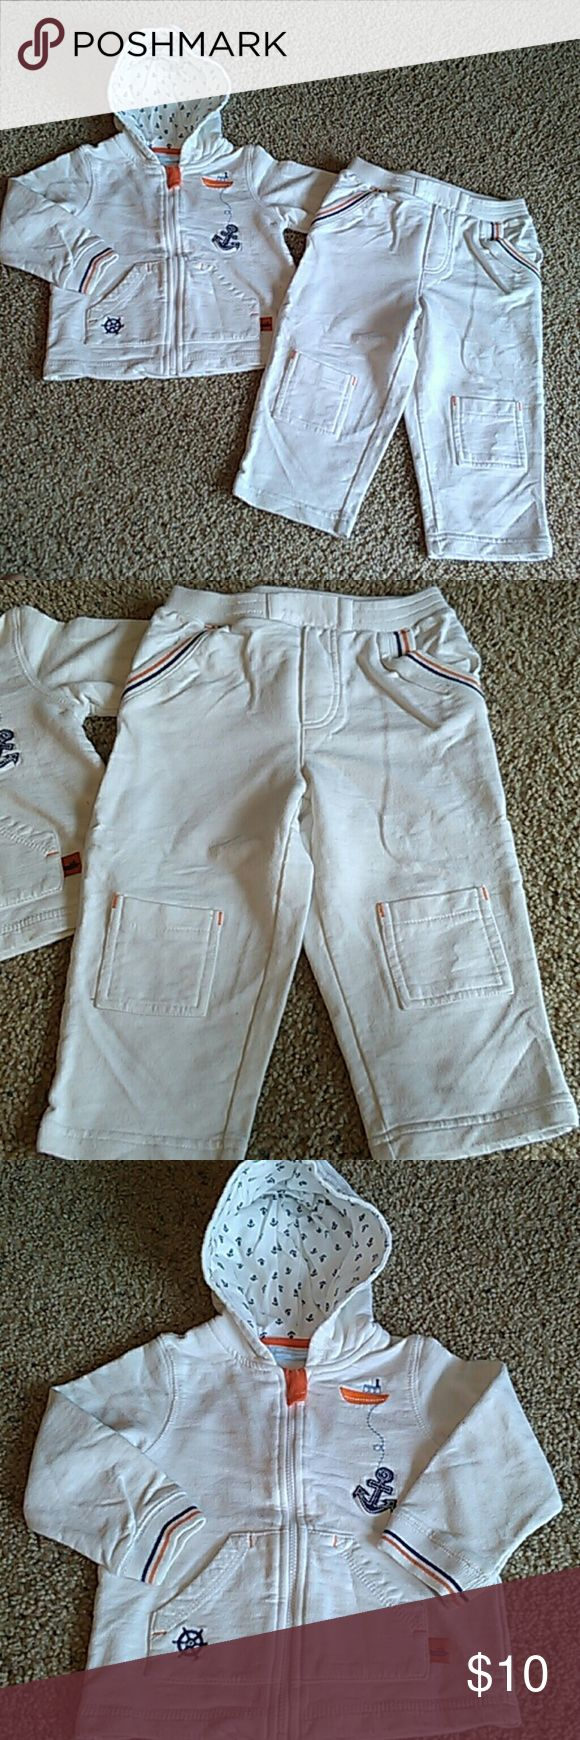 First Impression Sailors Outfit Gently used great condition. First Impressions Matching Sets